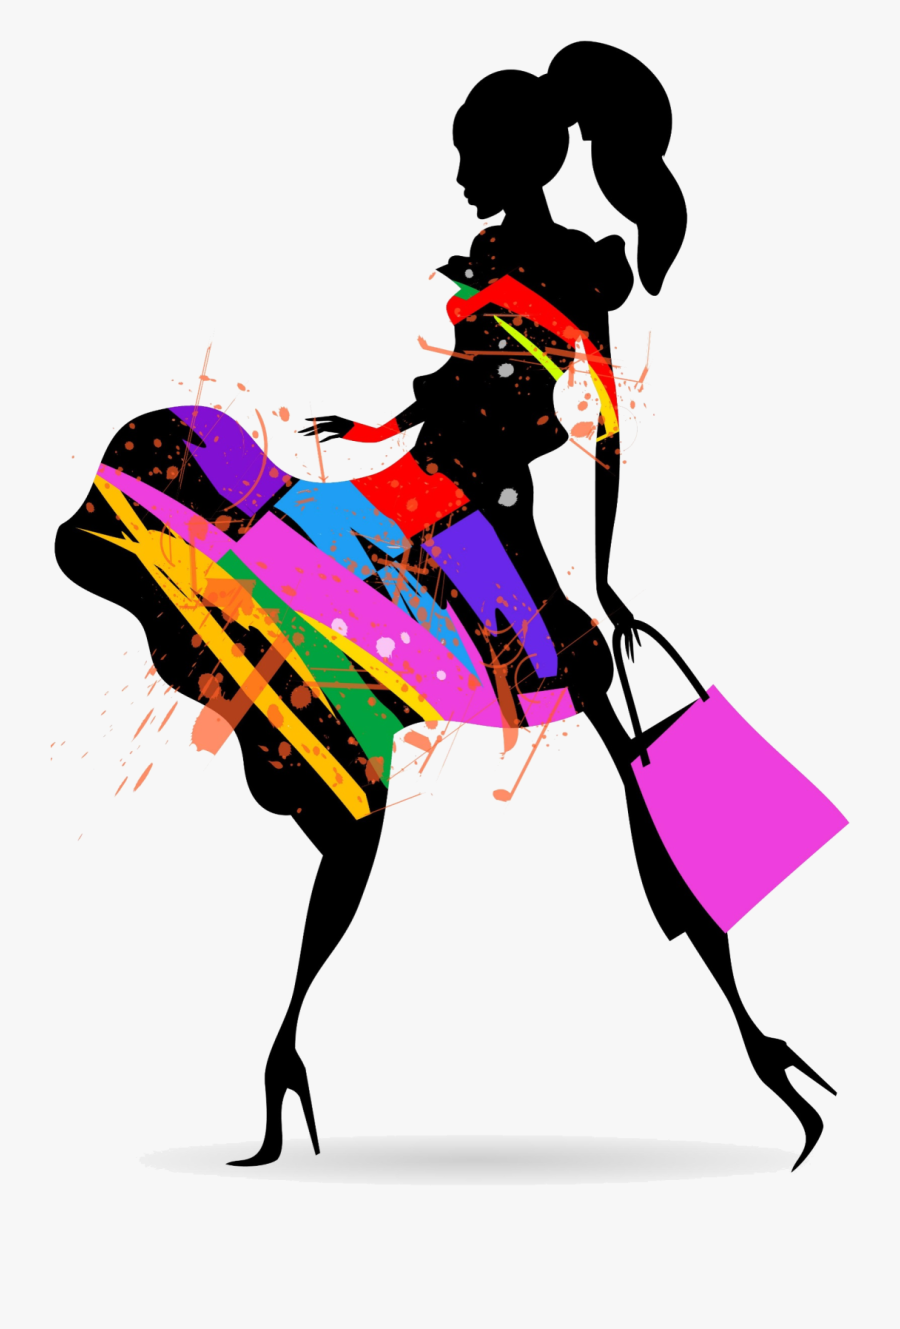 Fashion Silhouette Color No Background - Fashion Girl Silhouette Png, Transparent Clipart